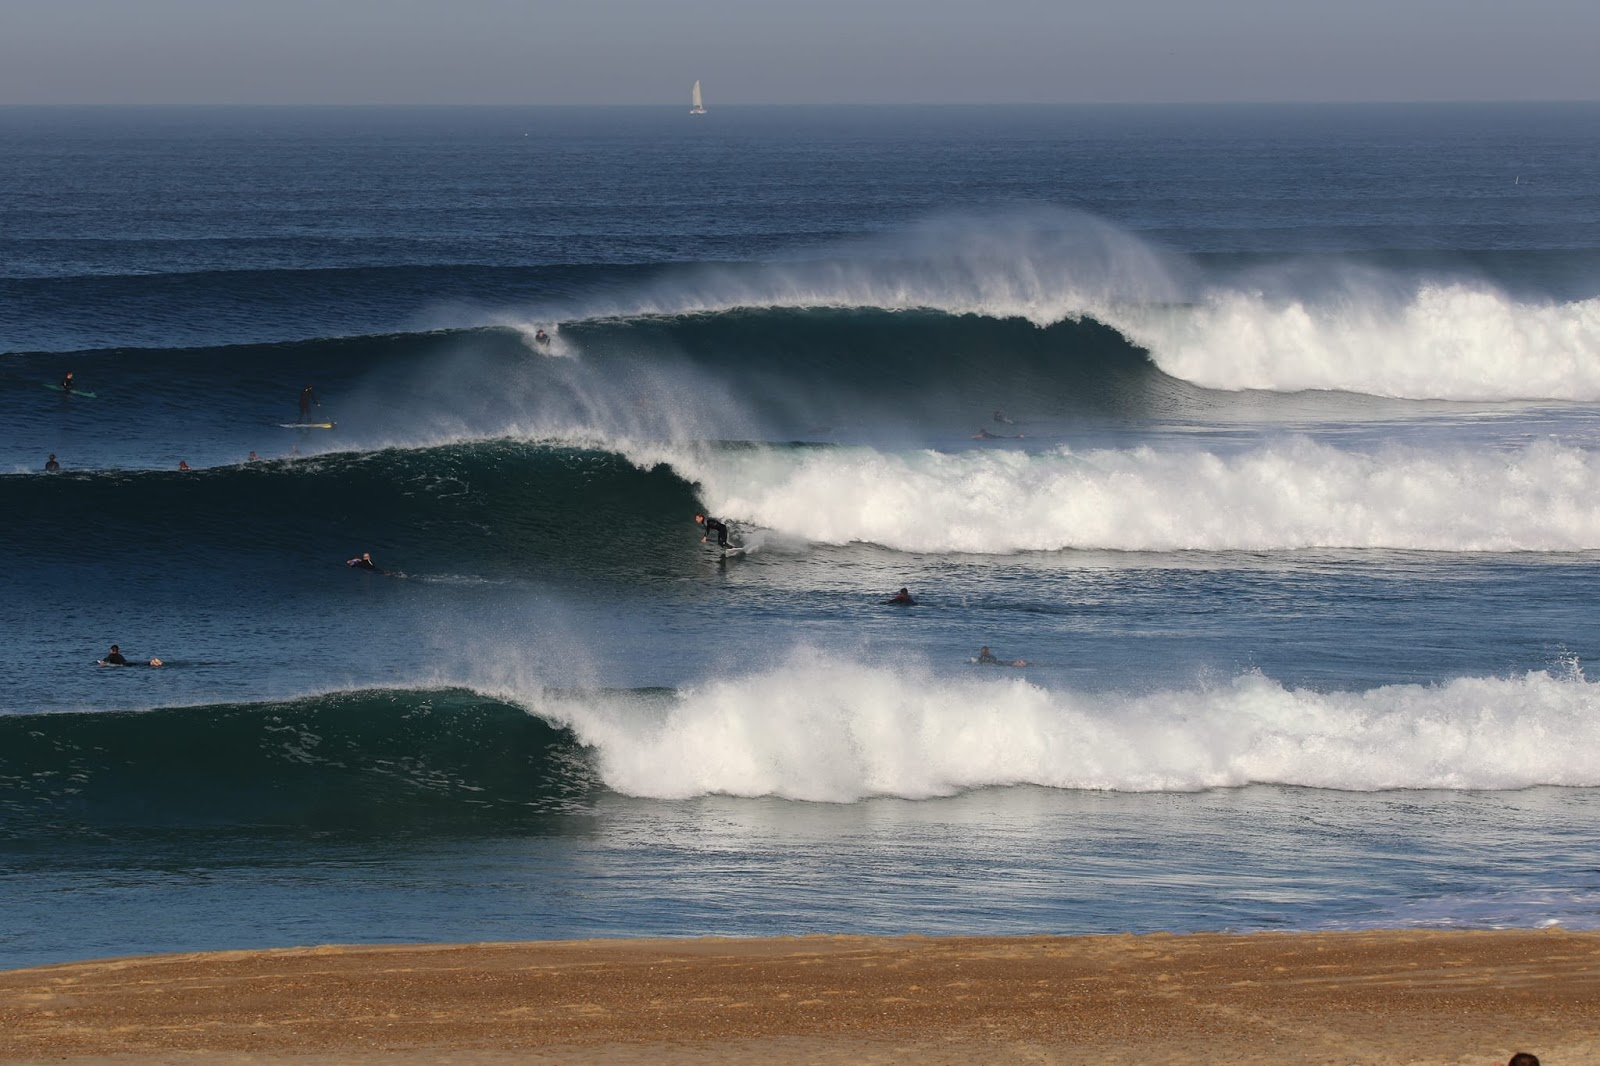 hossegor thursday 27 september 2018